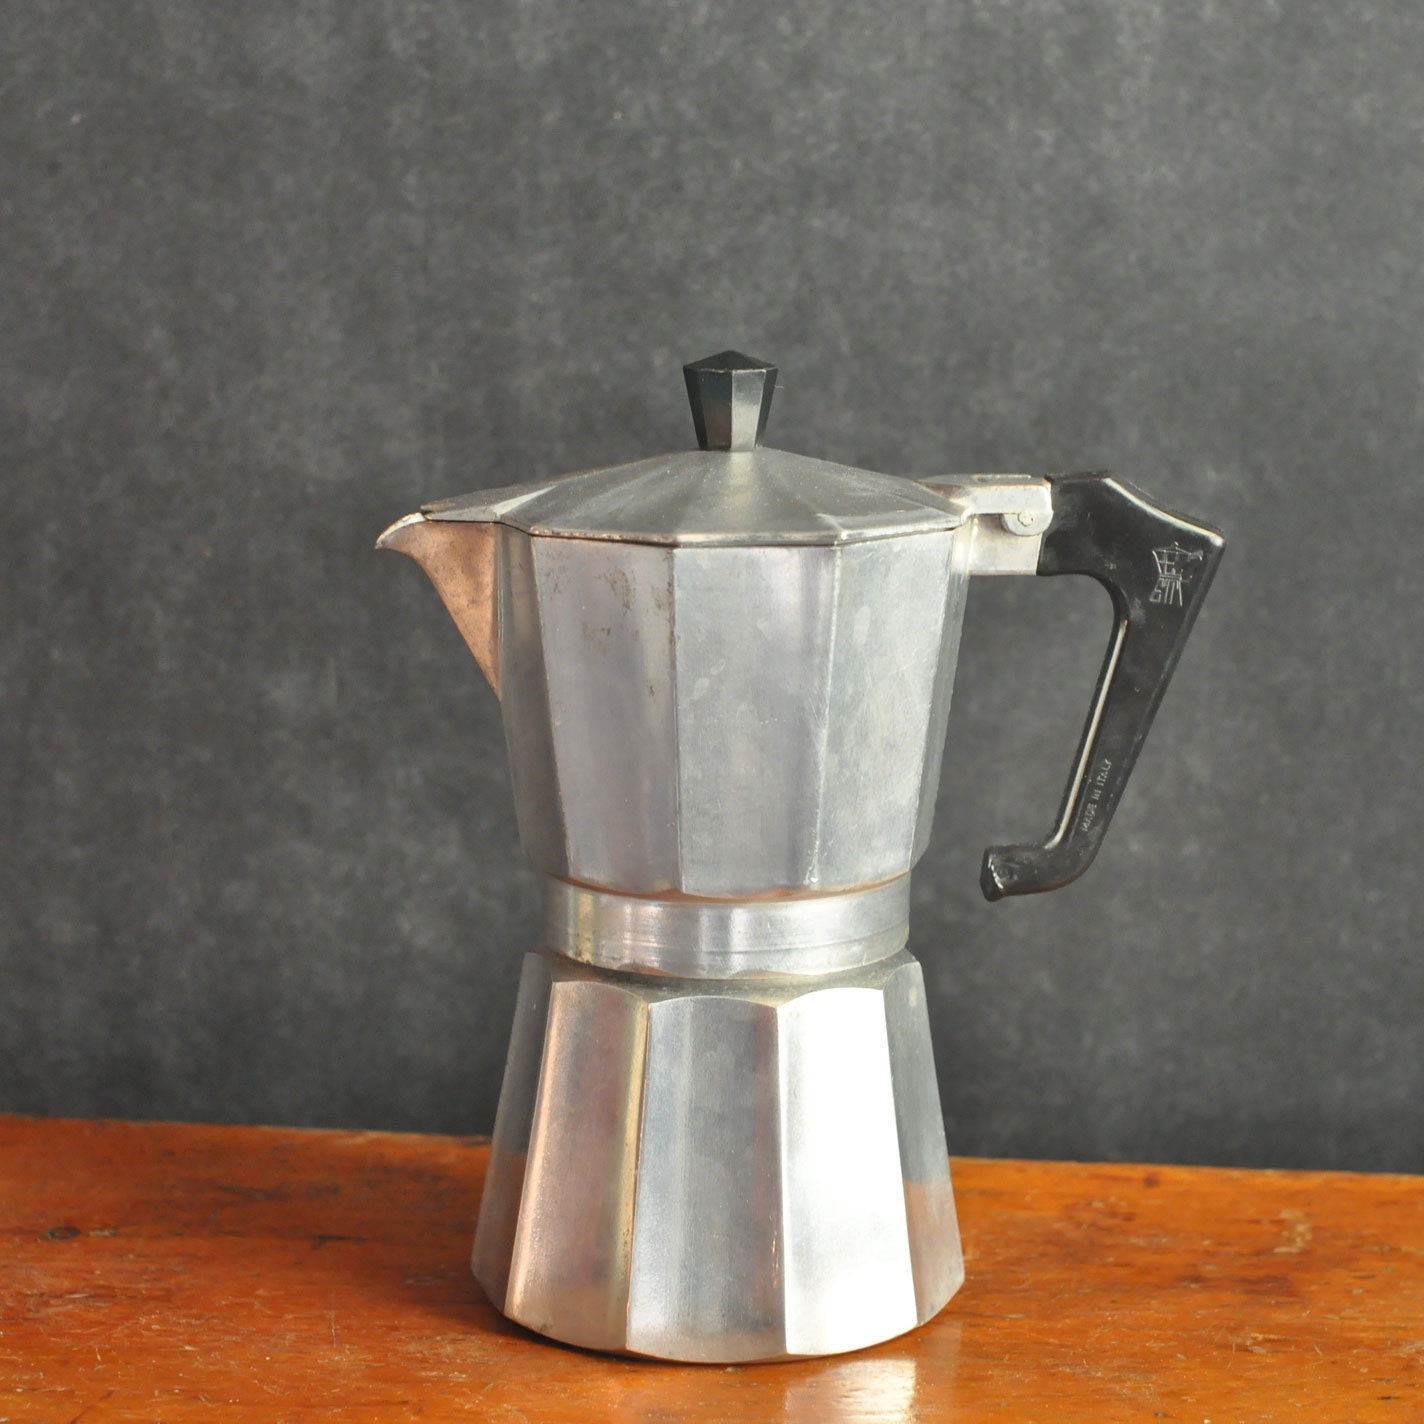 How To Use Vintage Coffee Maker : Vintage Italian Stovetop Coffee Espresso Maker by drowsySwords